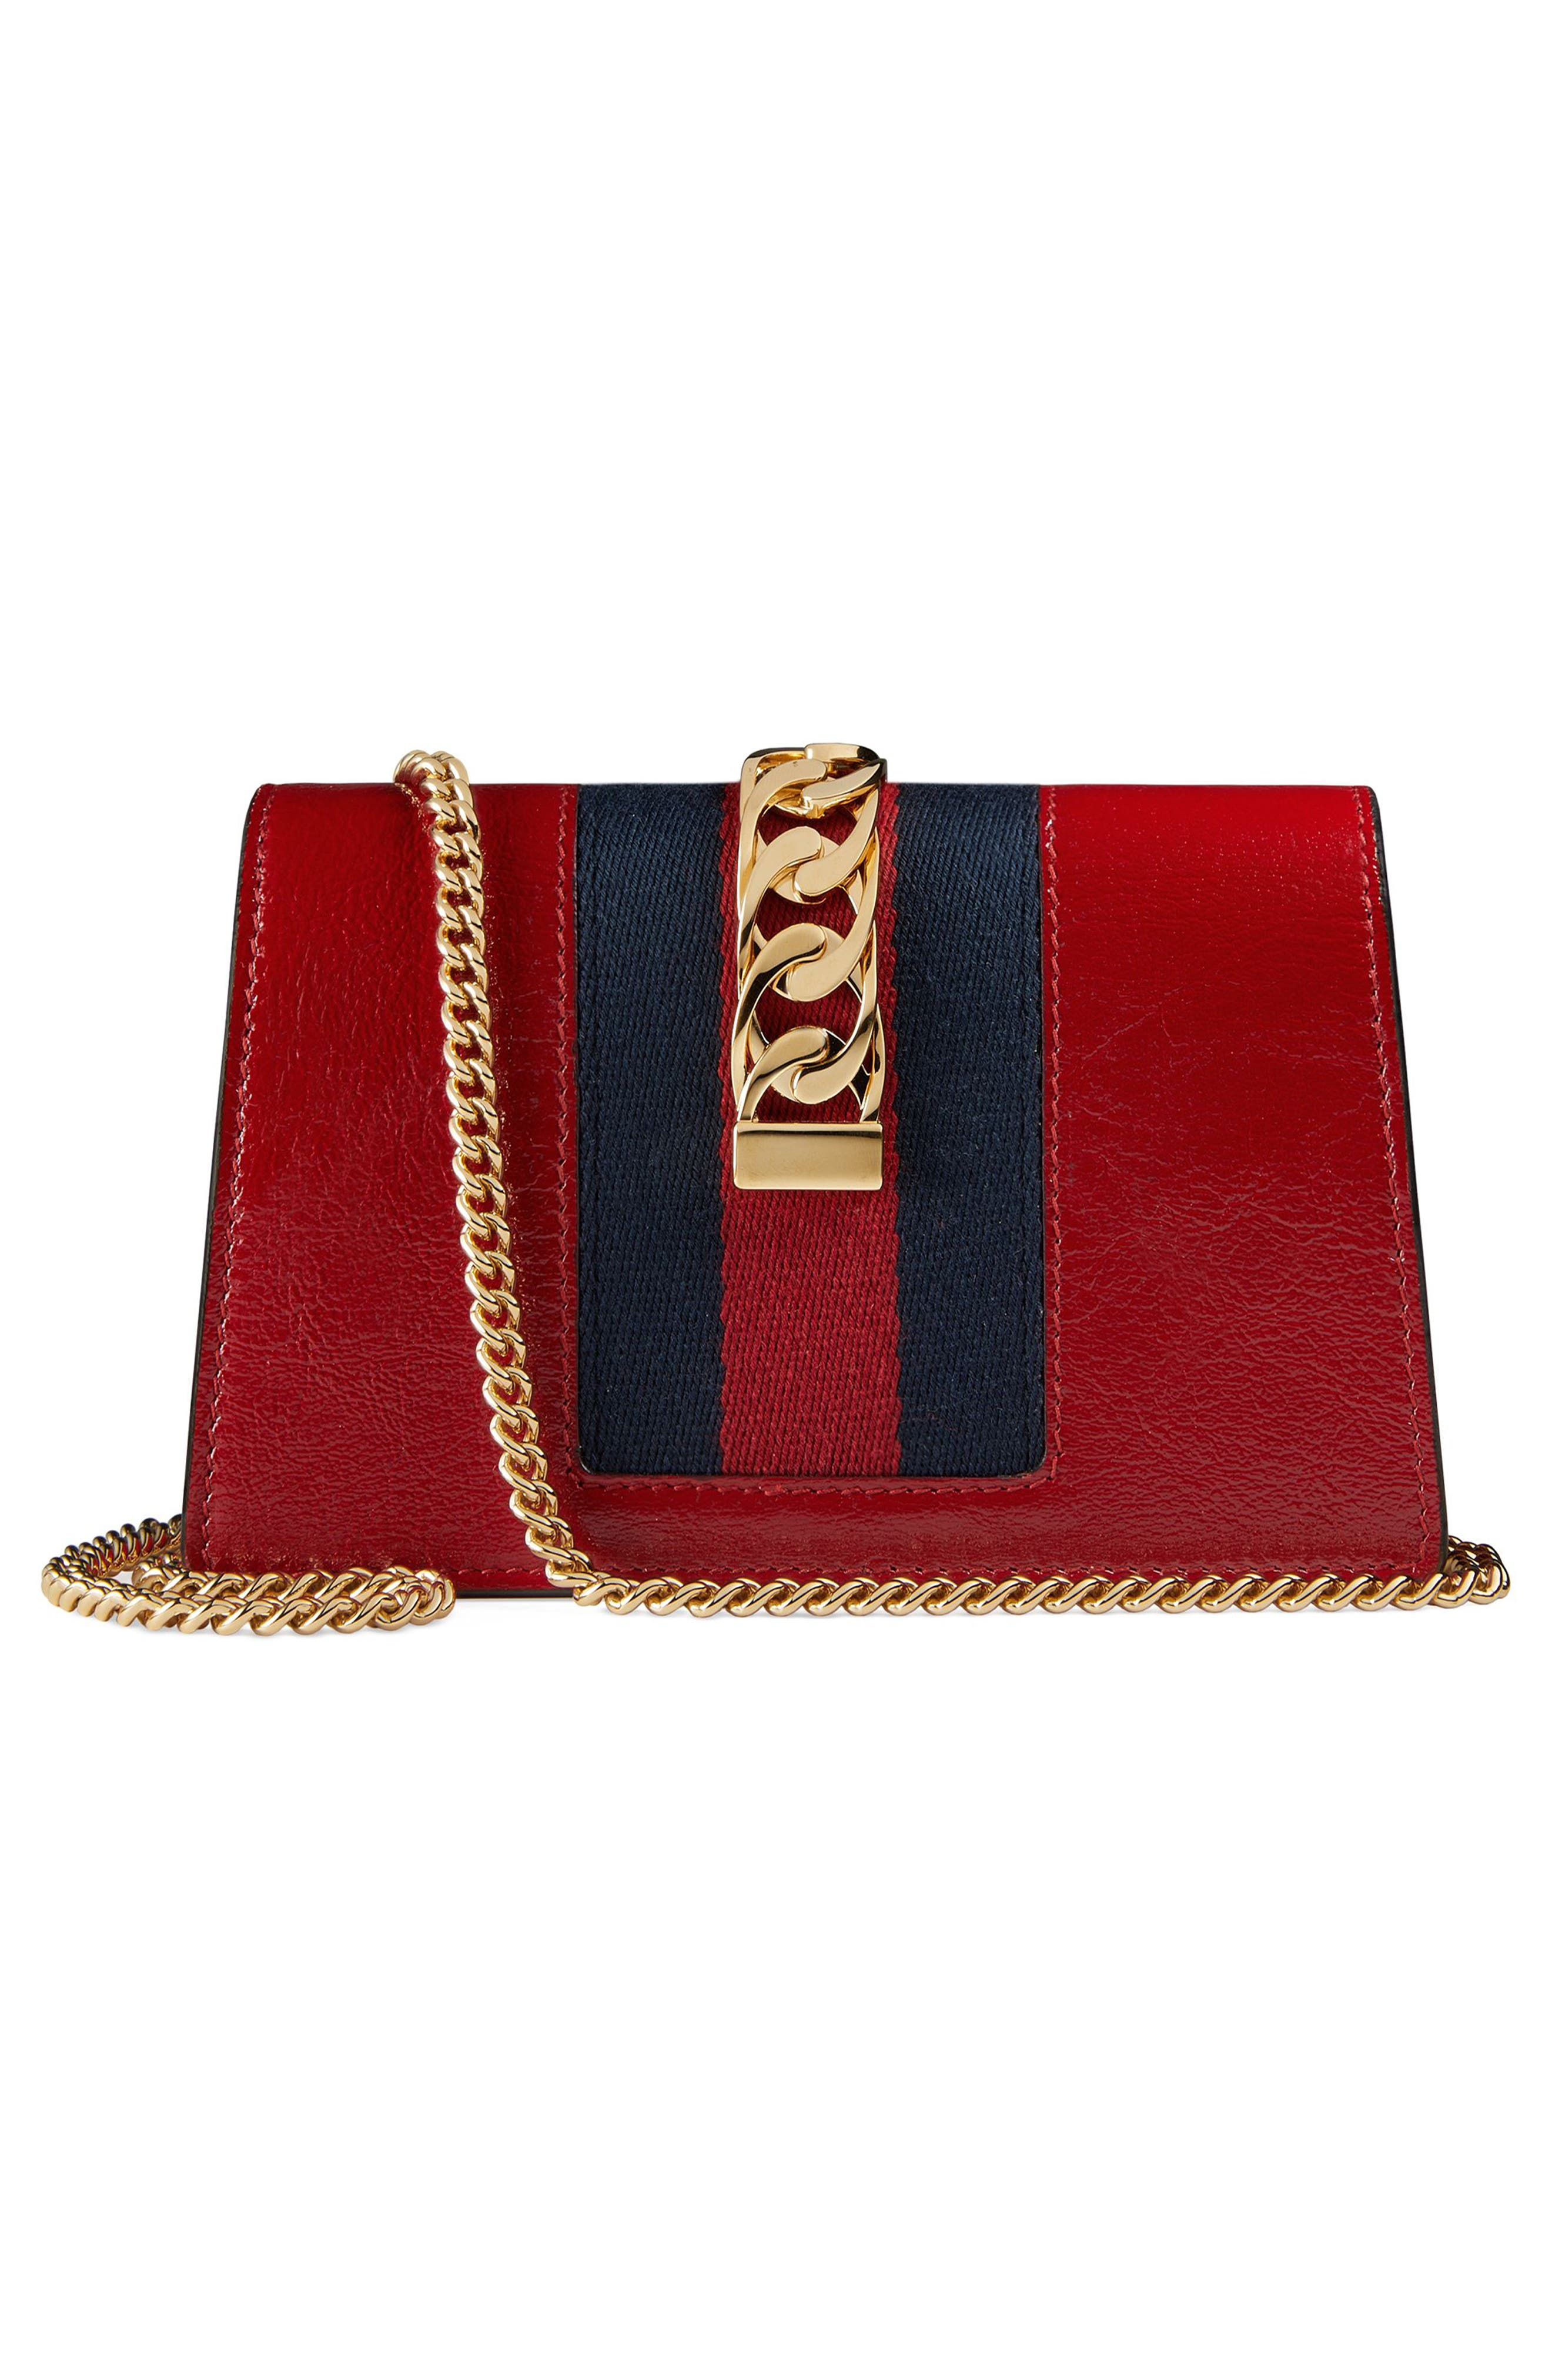 Super Mini Sylvie Embroidered Chain Wallet with Hook,                             Alternate thumbnail 3, color,                             HIBISCUS RED MULTI/ BLUE